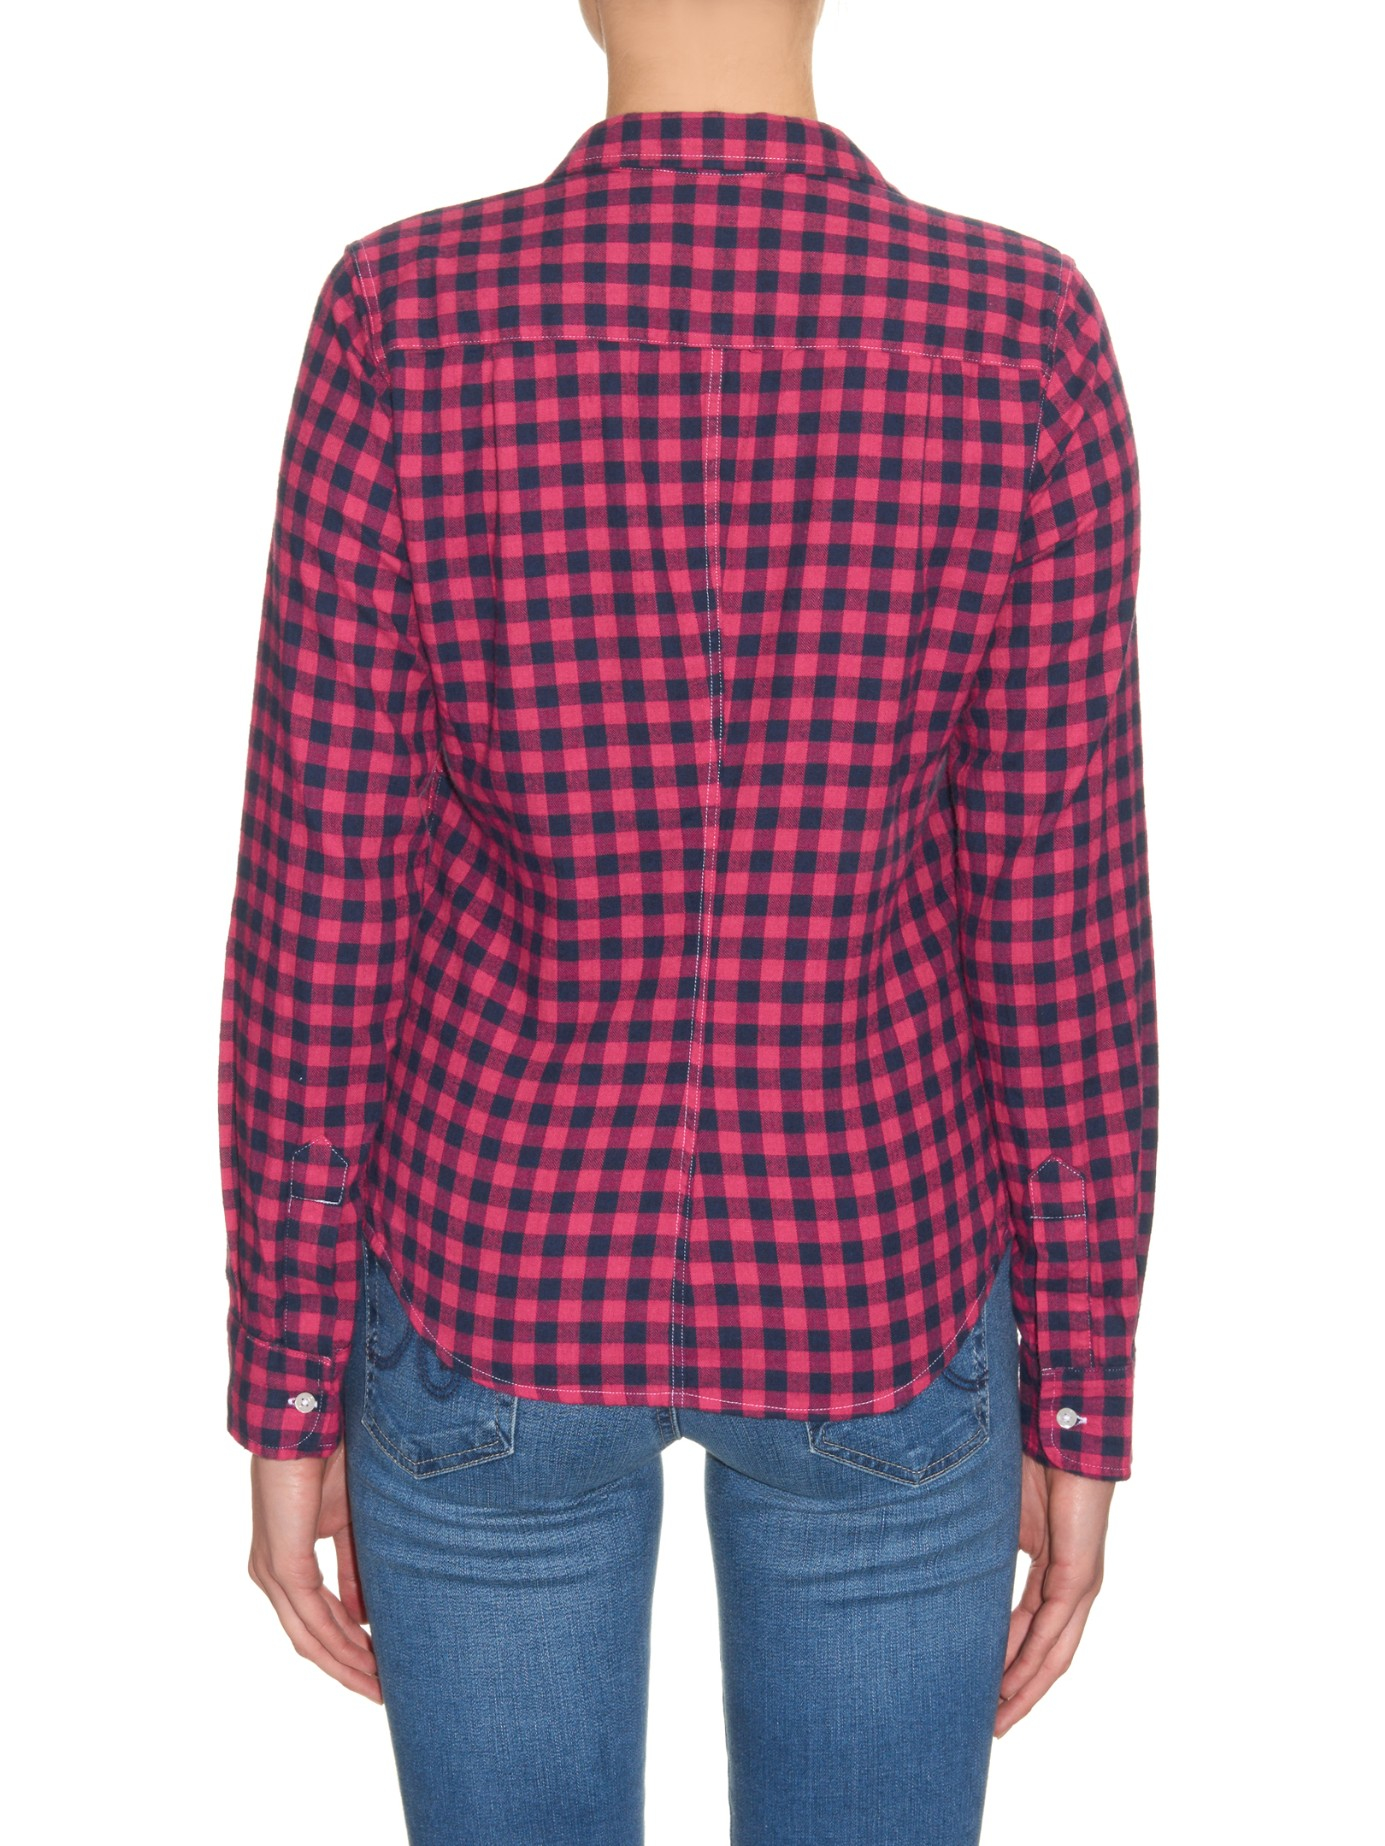 Lyst Frank Eileen Barry Checked Cotton Shirt In Red